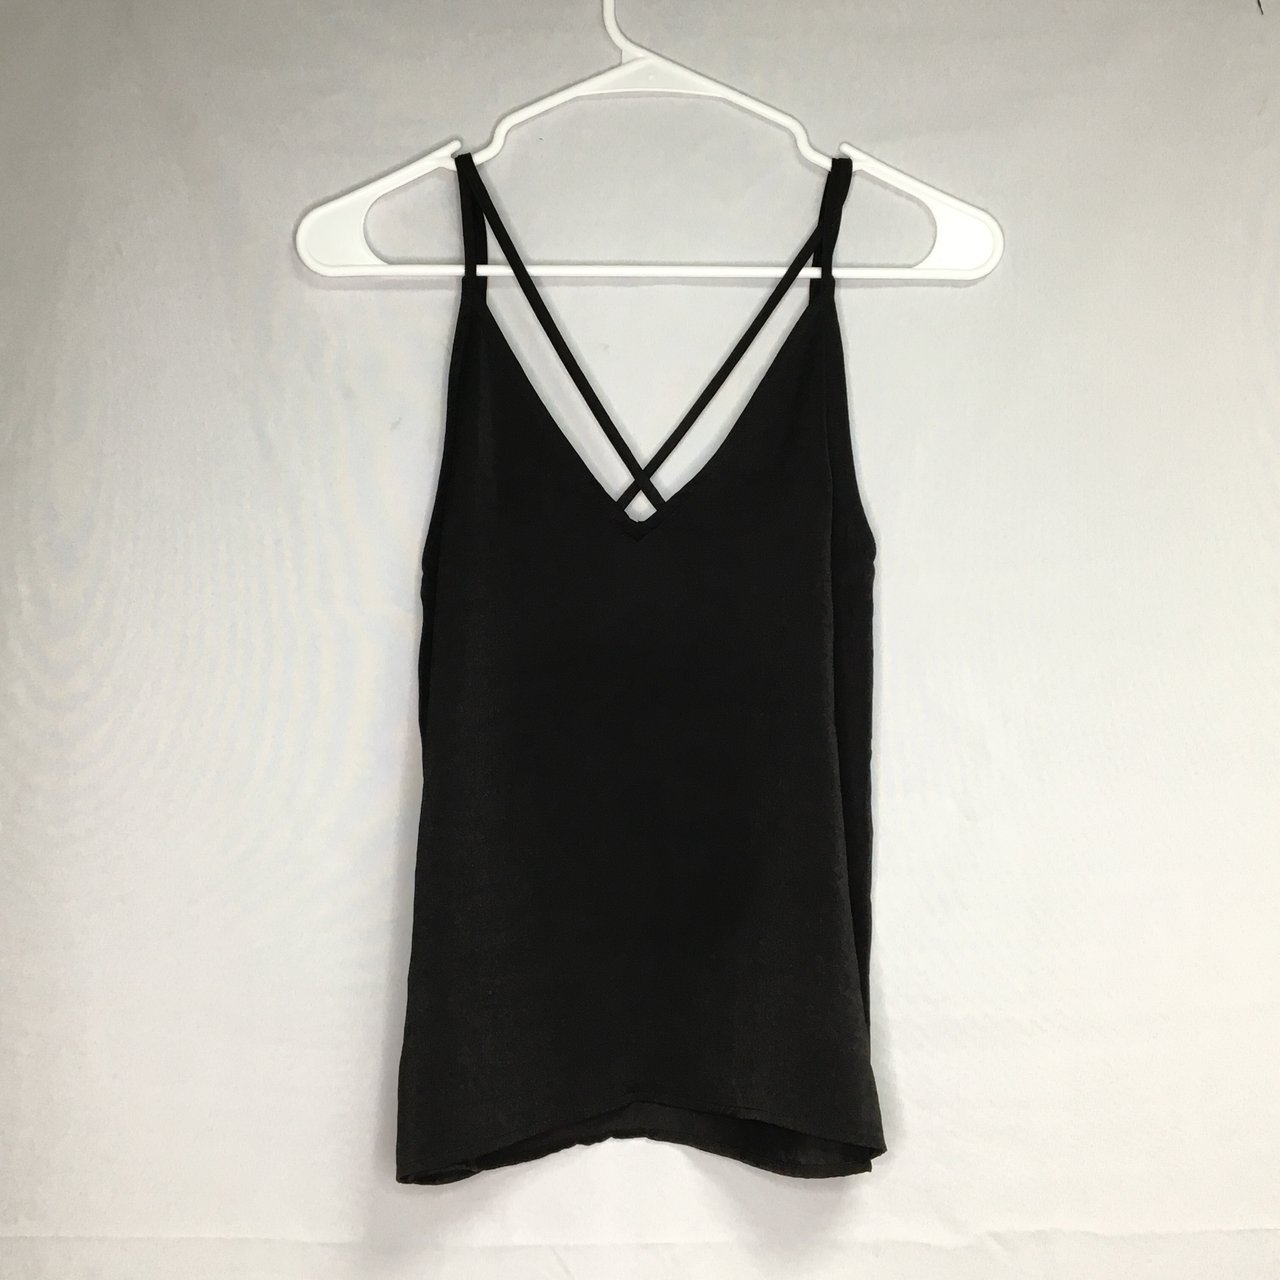 dbe0339922270 H&M black tank top. The straps form an X in the back. It's a - Depop